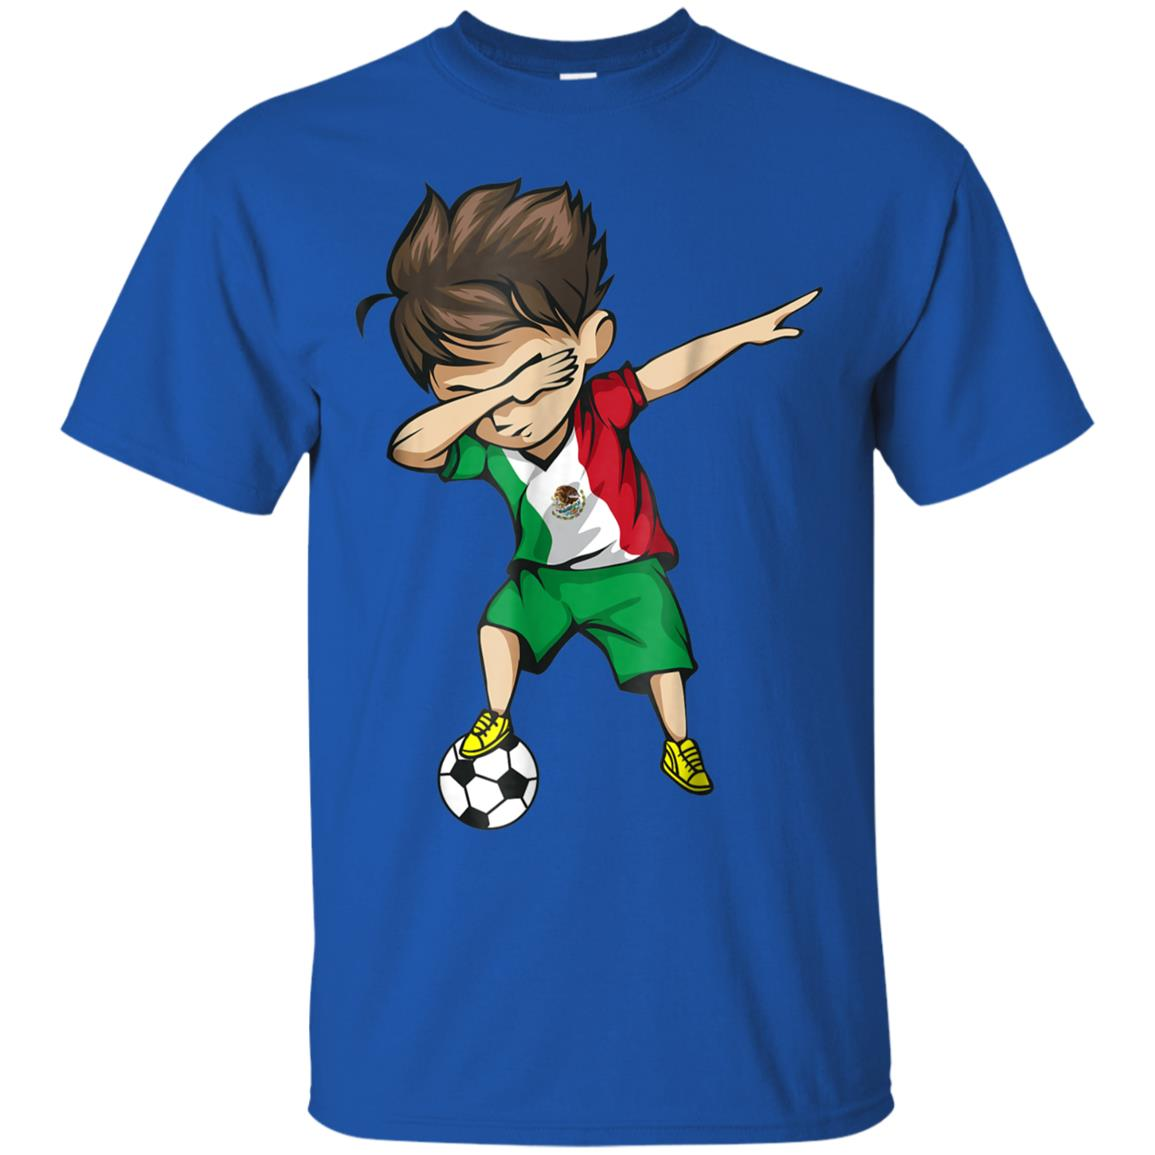 c9cf1e84c Awesome dabbing soccer boy mexico jersey shirt mexican football ...